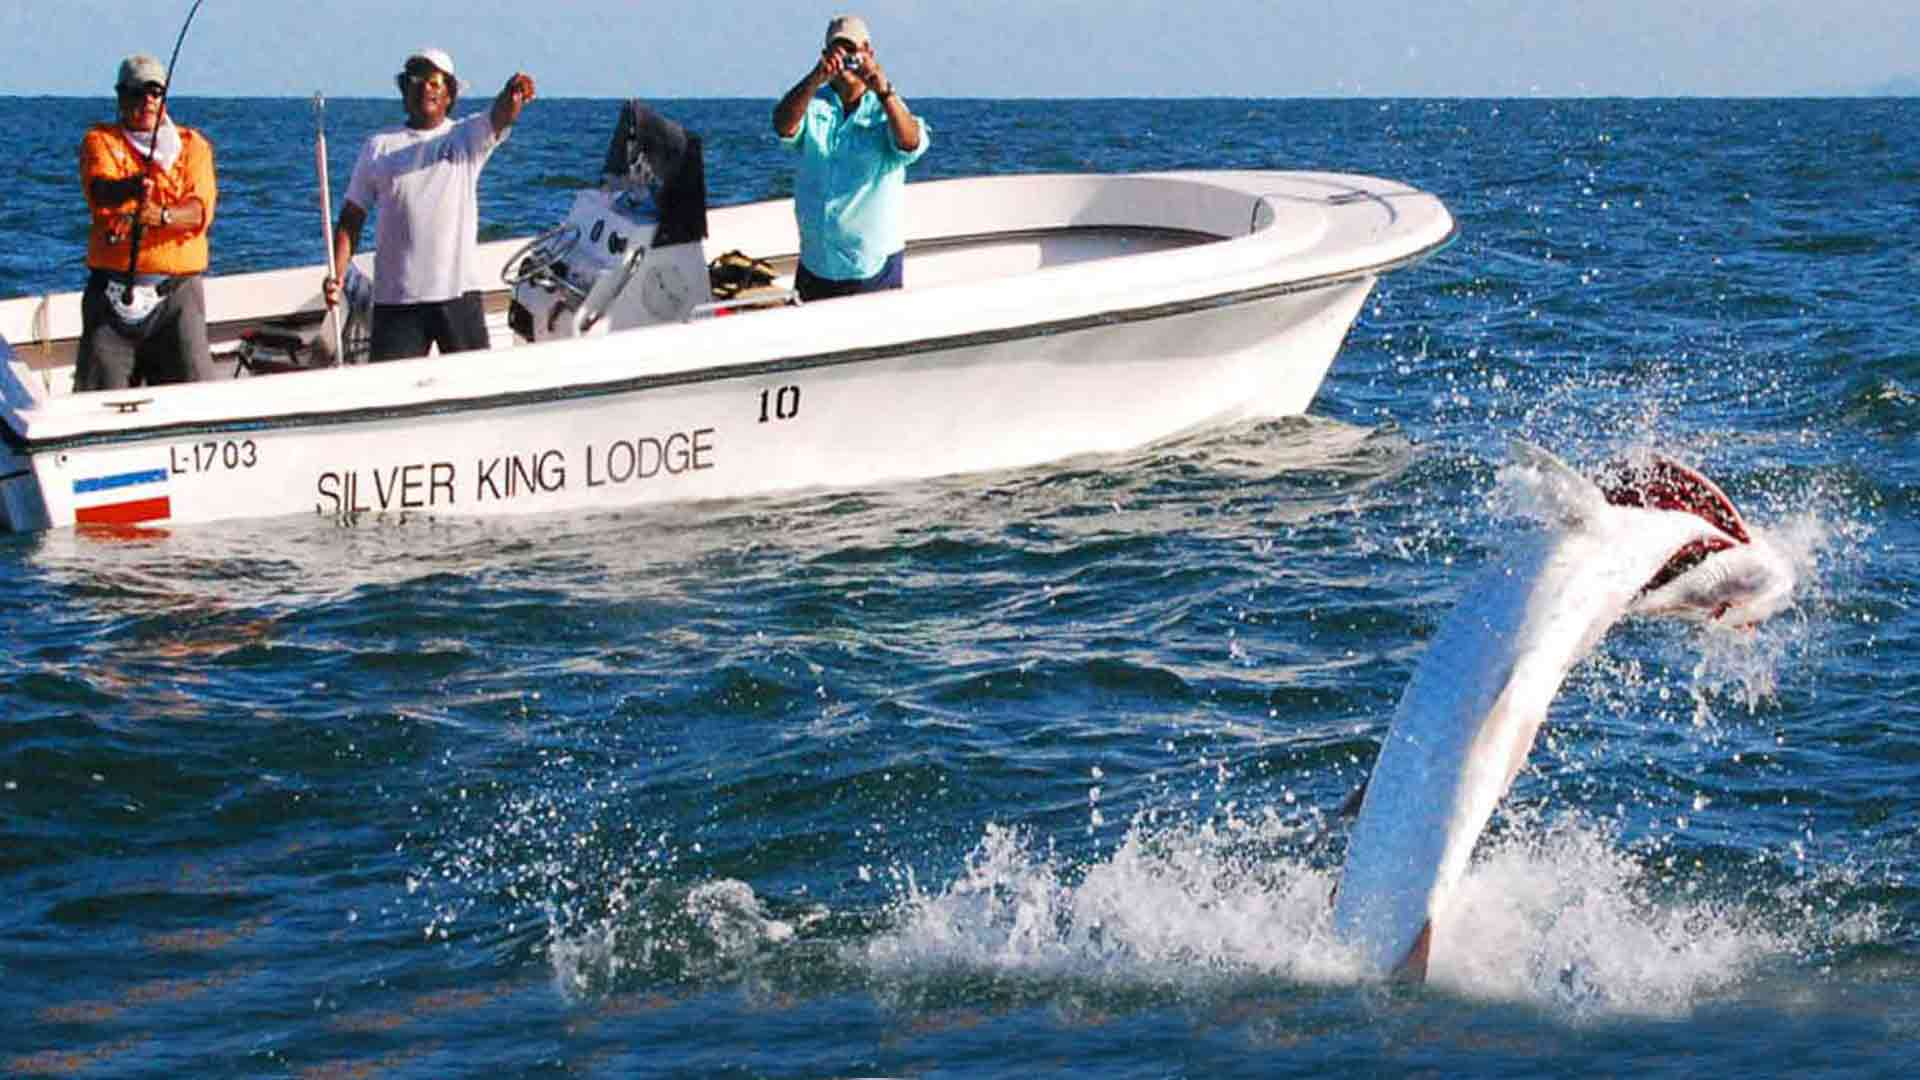 Silver King Lodge Tarpon fishing